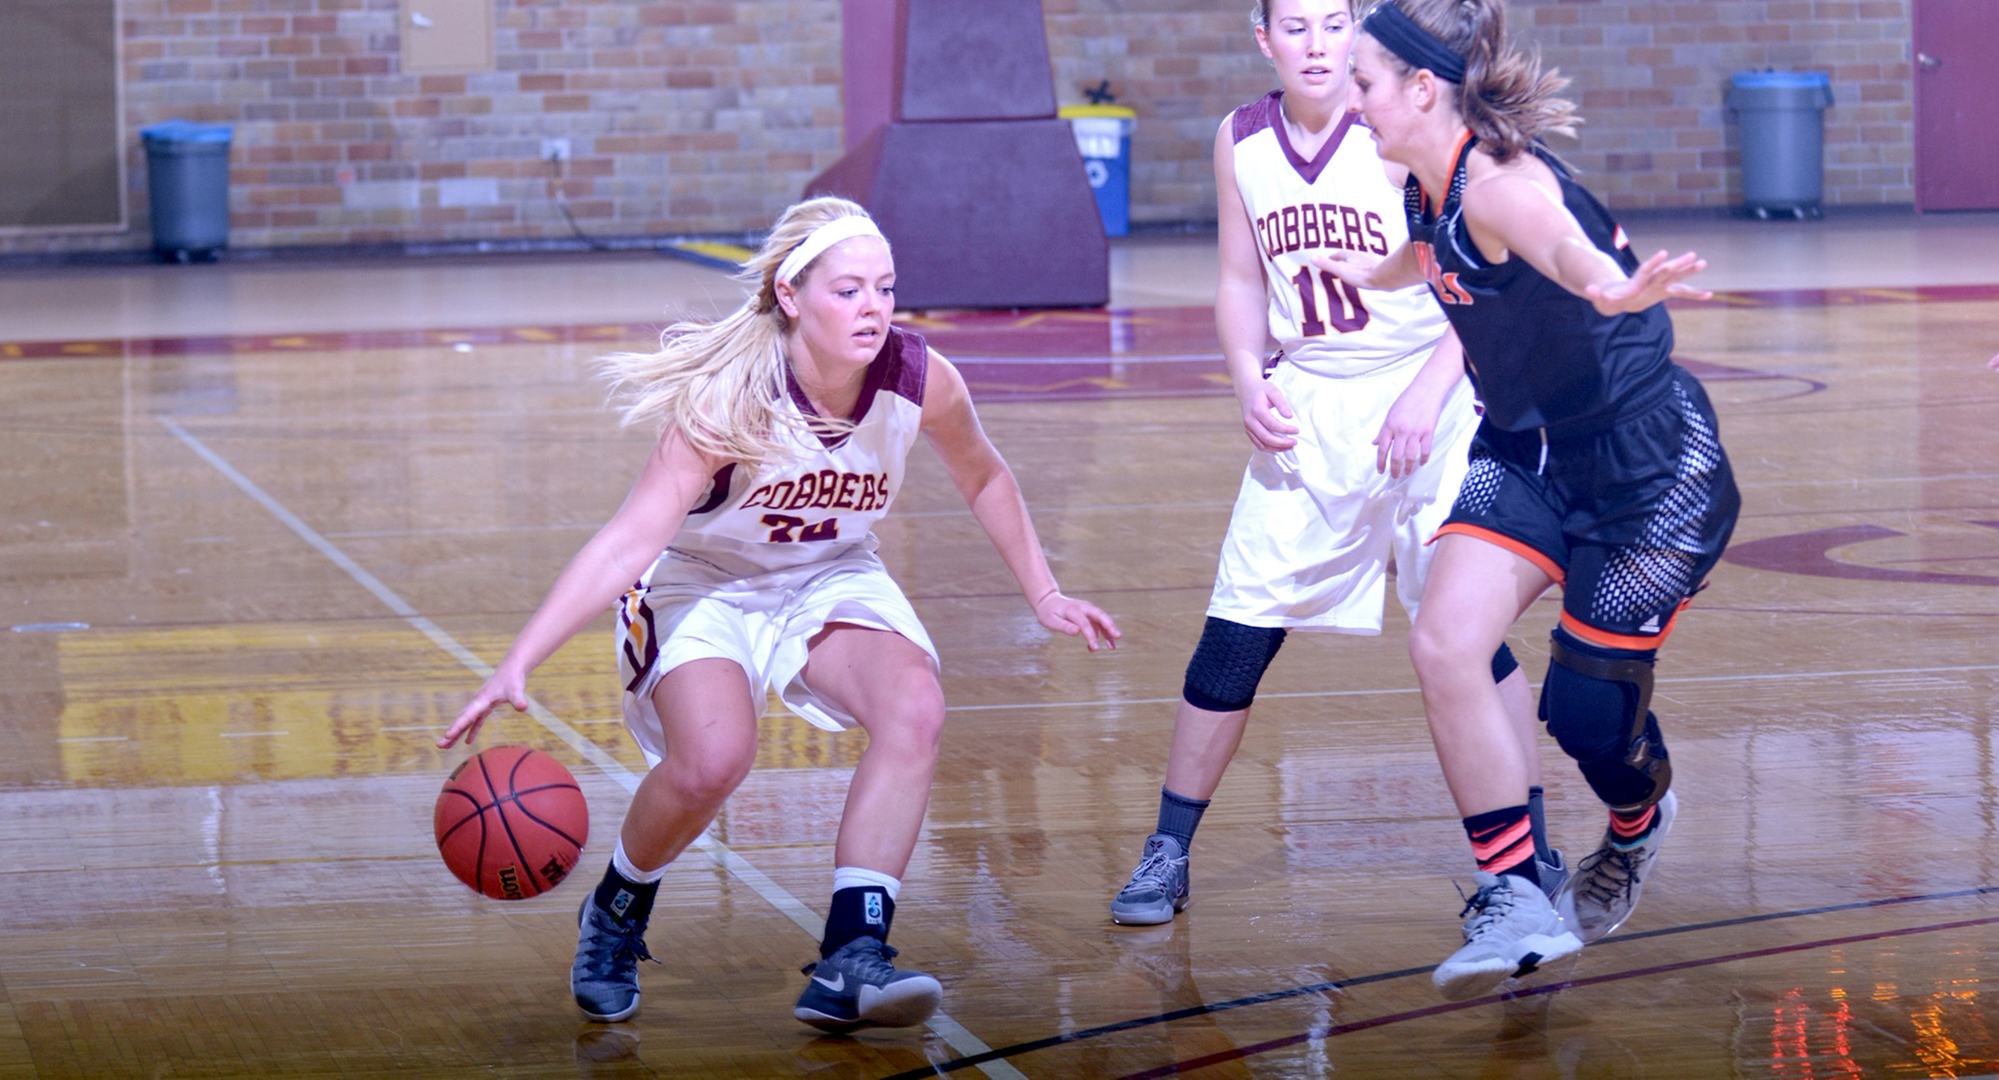 Sophomore Grace Wolhowe had a team-high 12 points in the Cobbers' final non-conference game of the year at Valley City State.